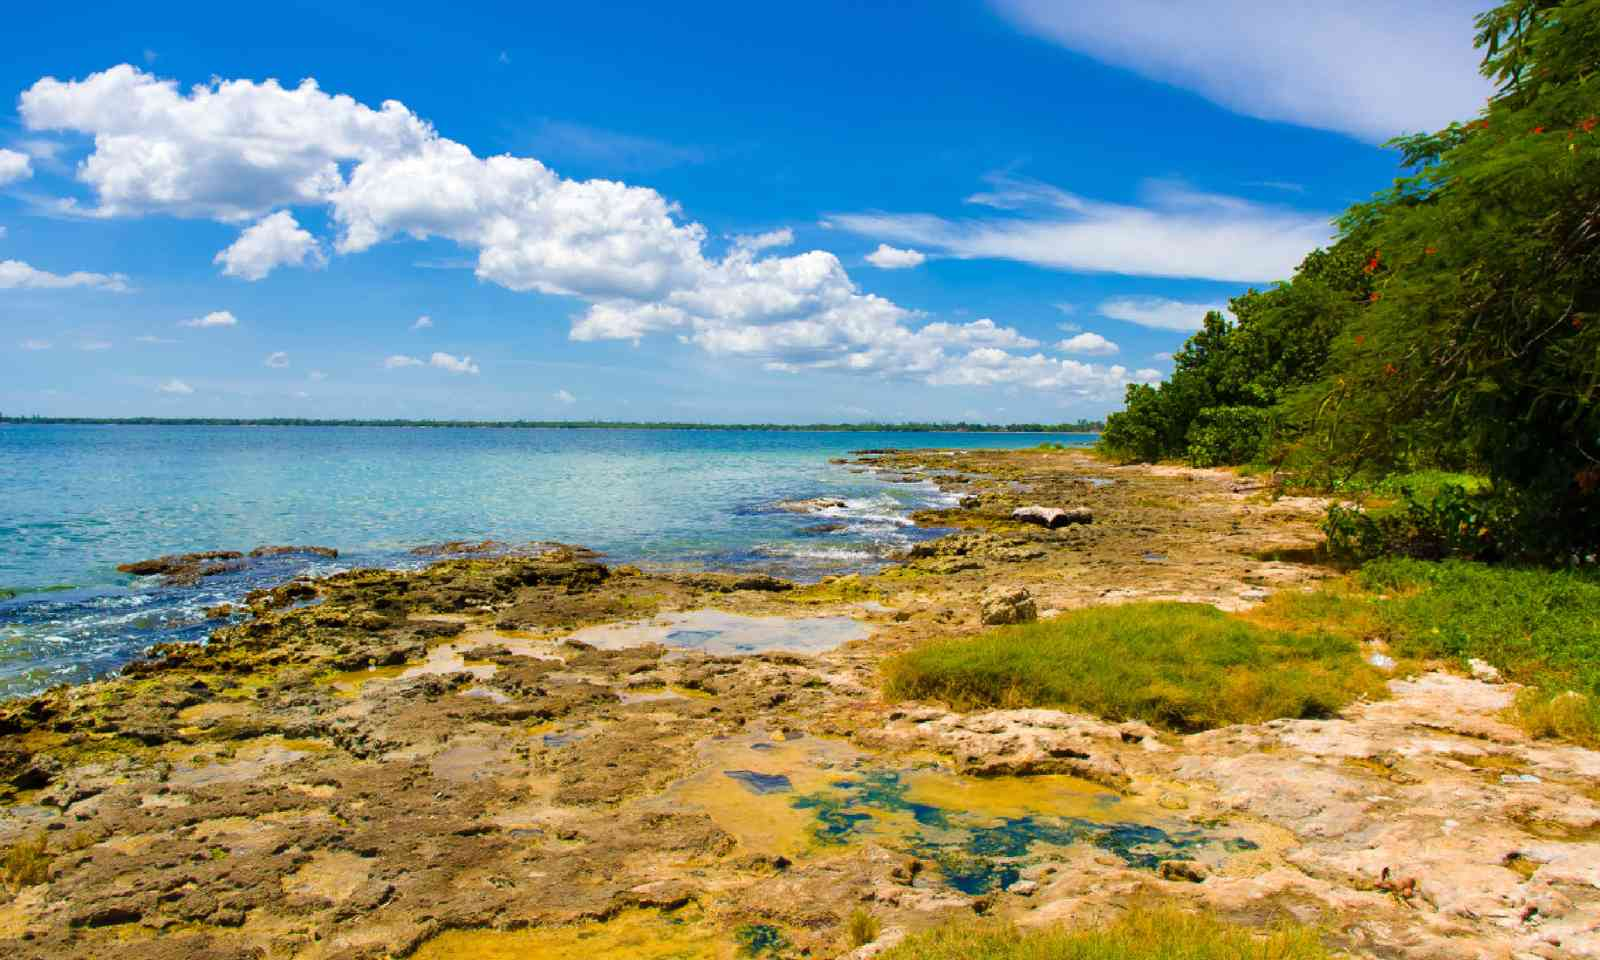 The Bay of Pigs (Dreamstime)